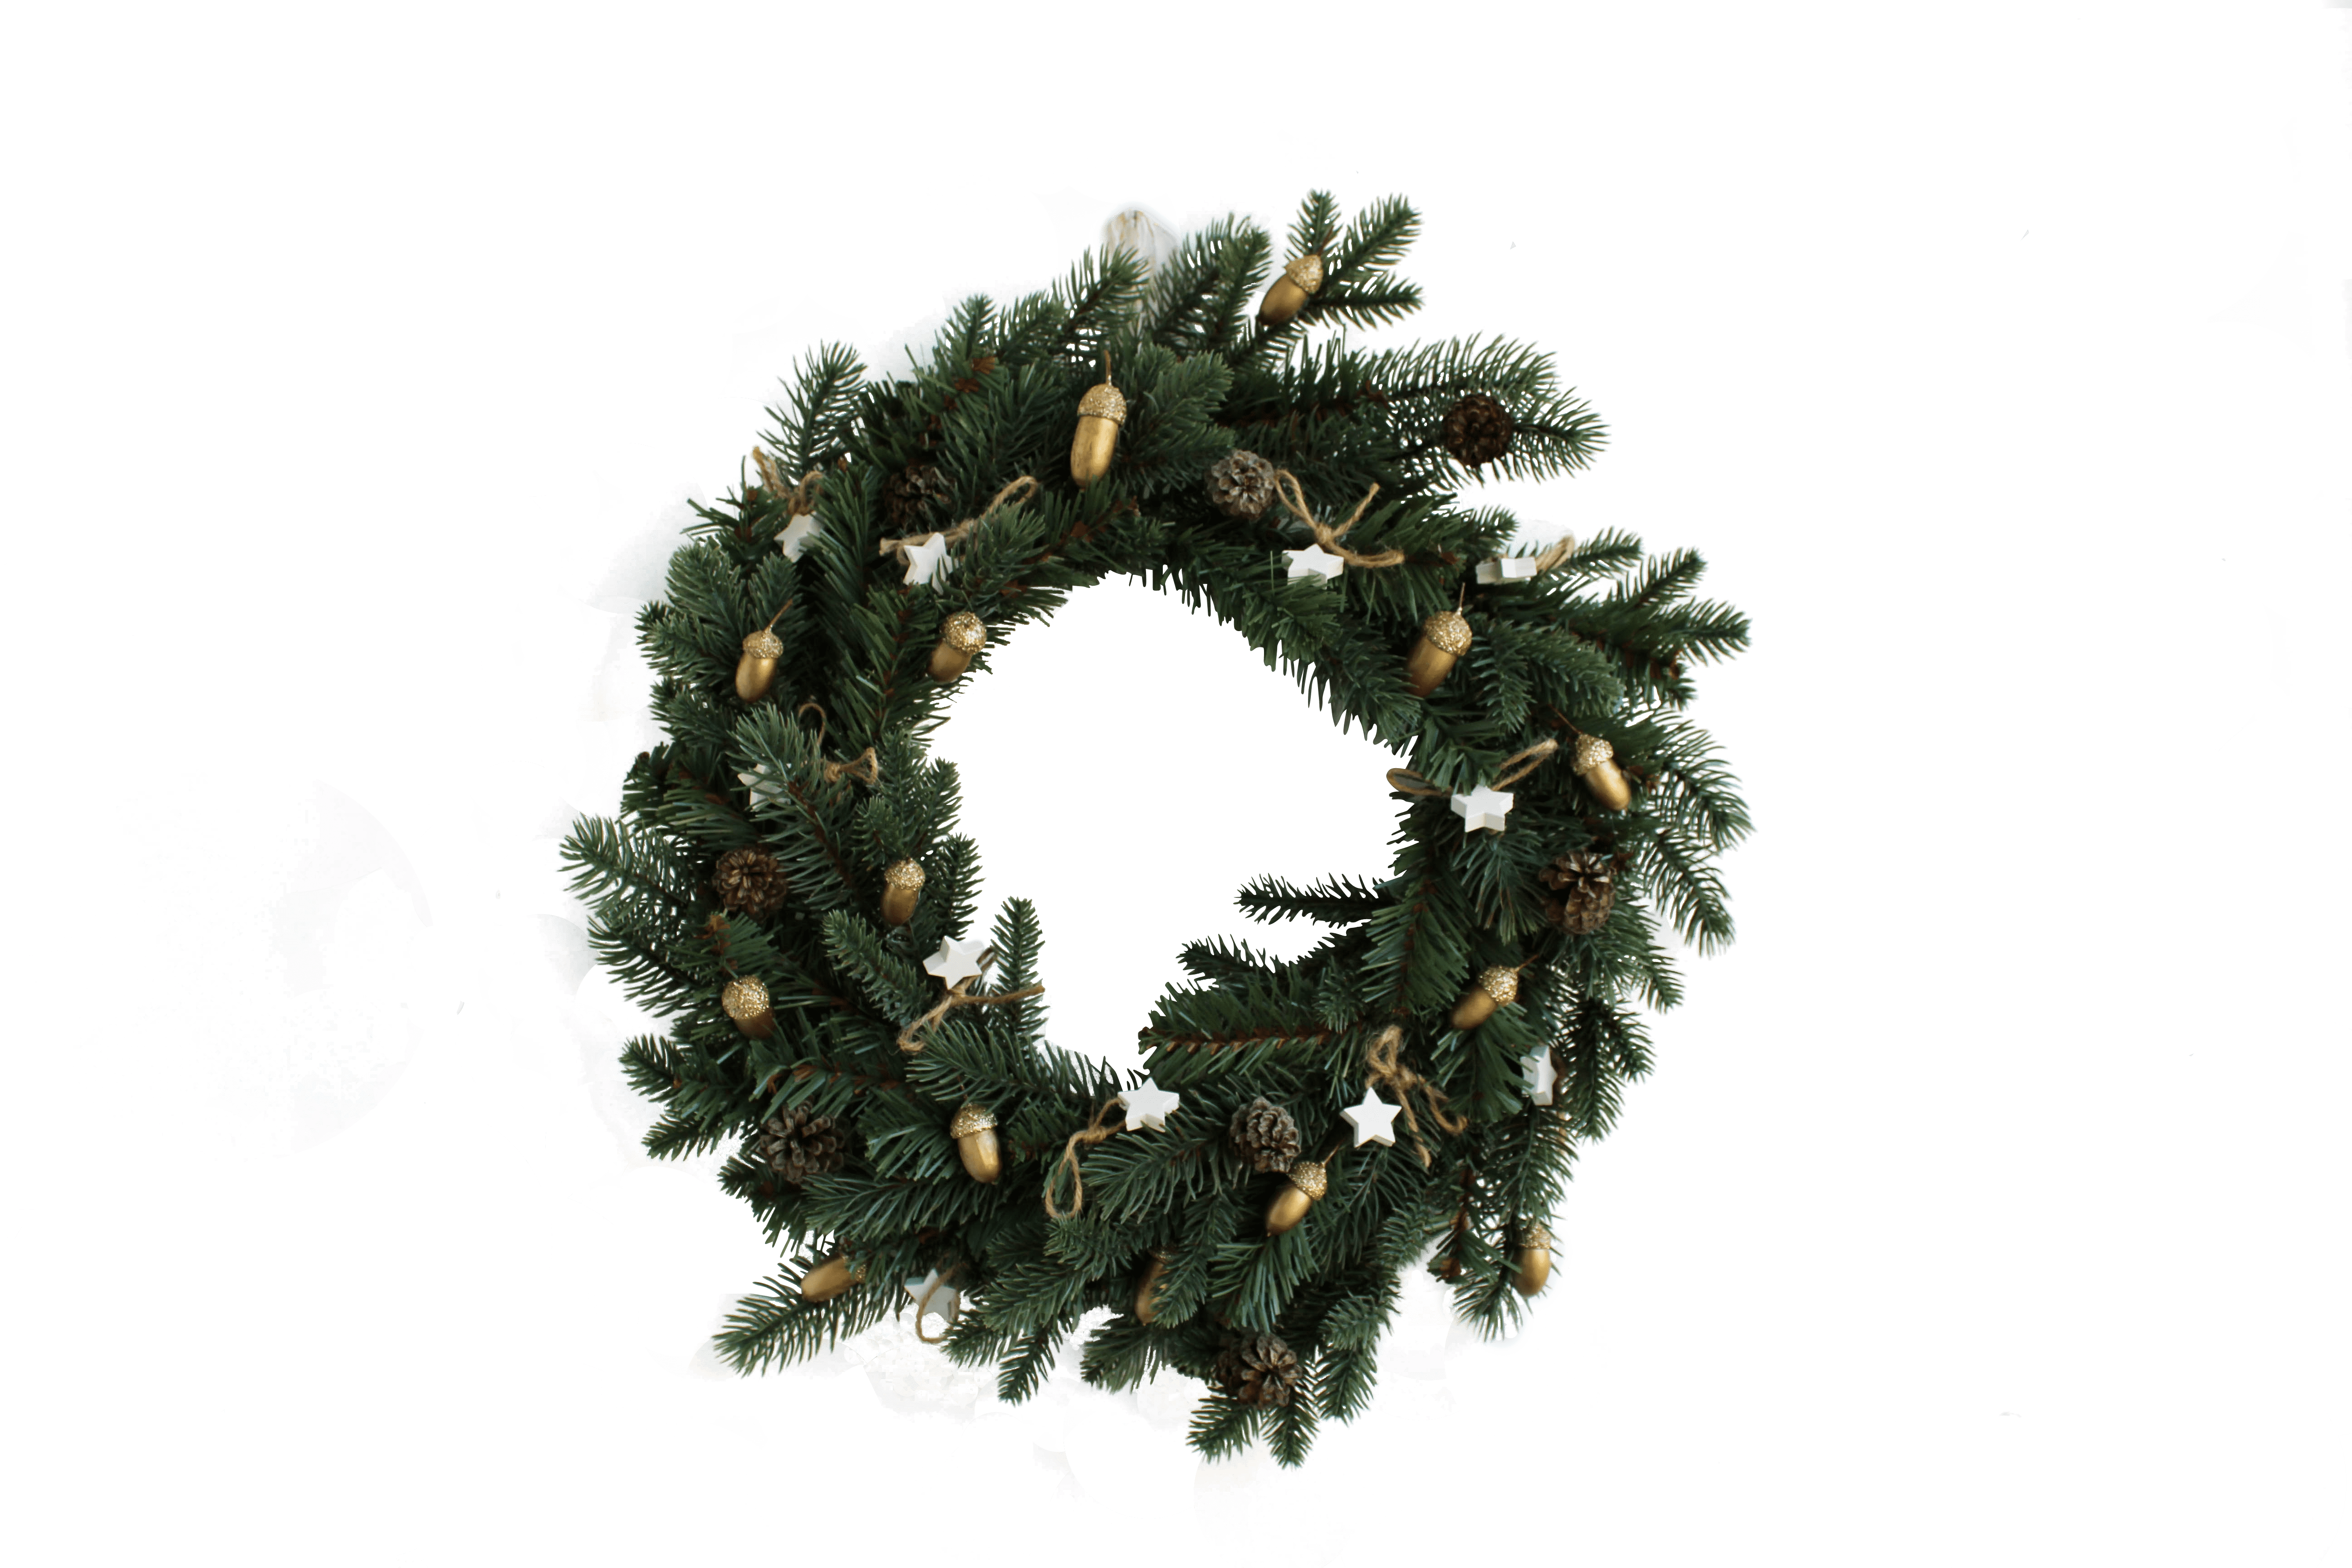 christmas wreath transparent background.png